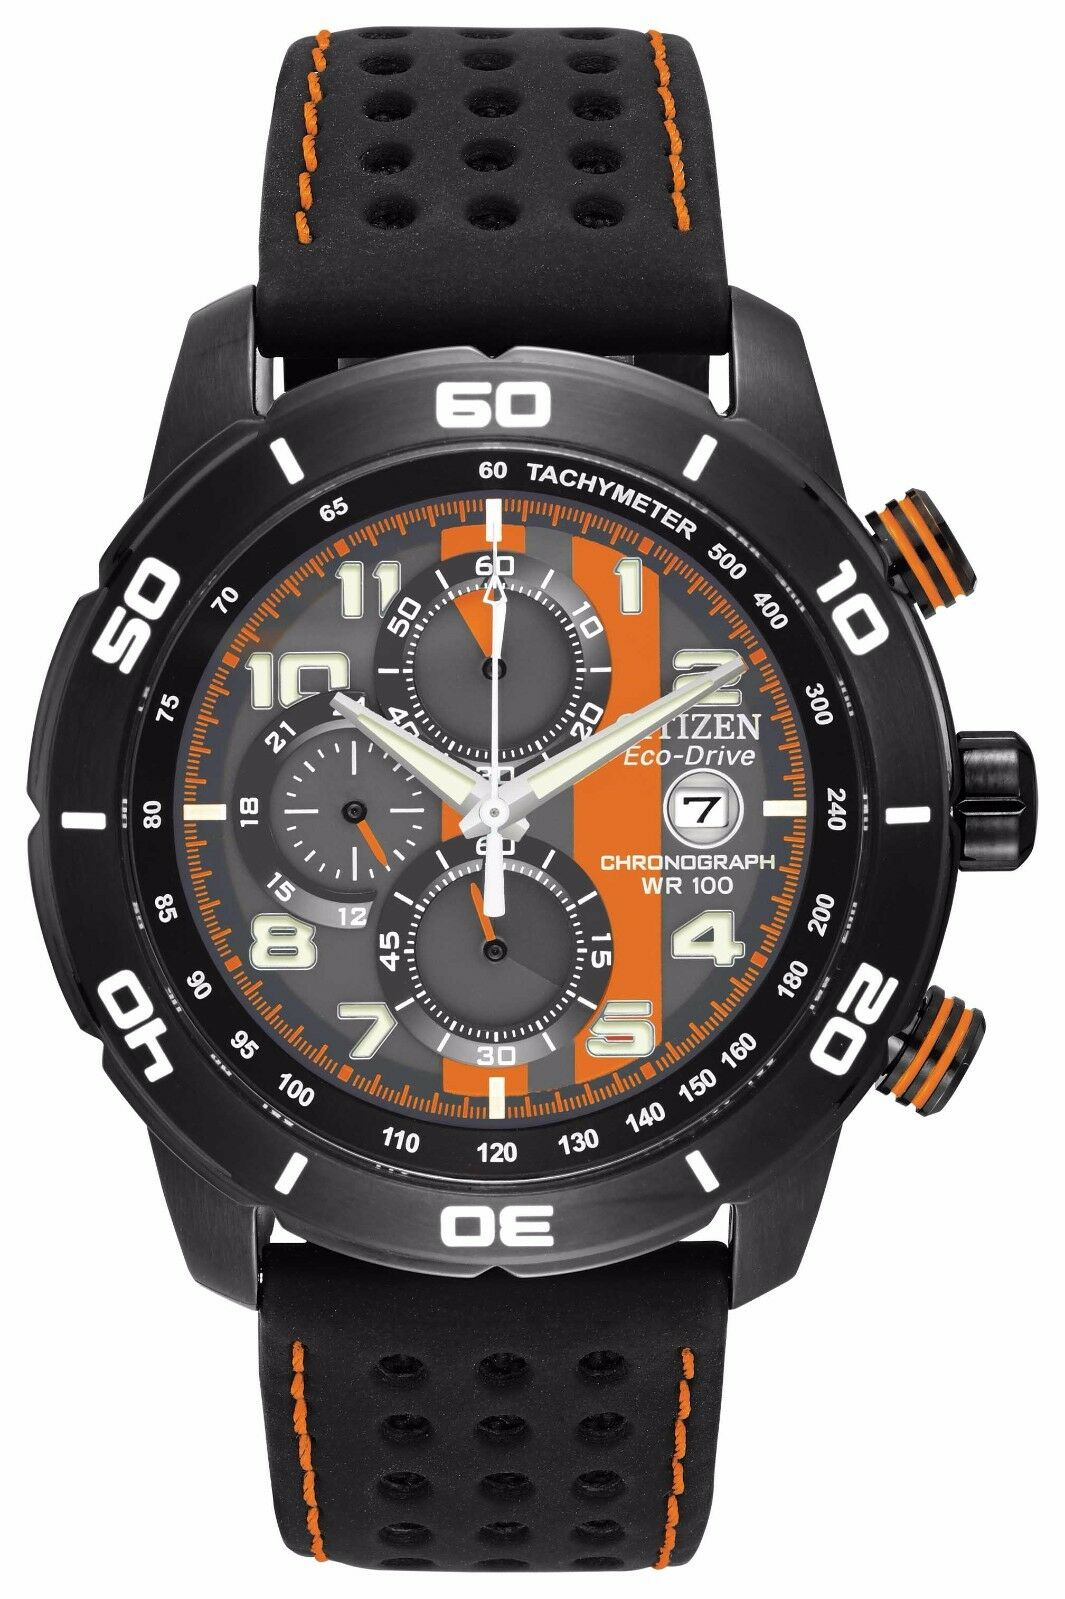 $169.99 - Citizen Eco-Drive Men's CA0467-11H Chronograph Black and Orange Dial Sport Watch